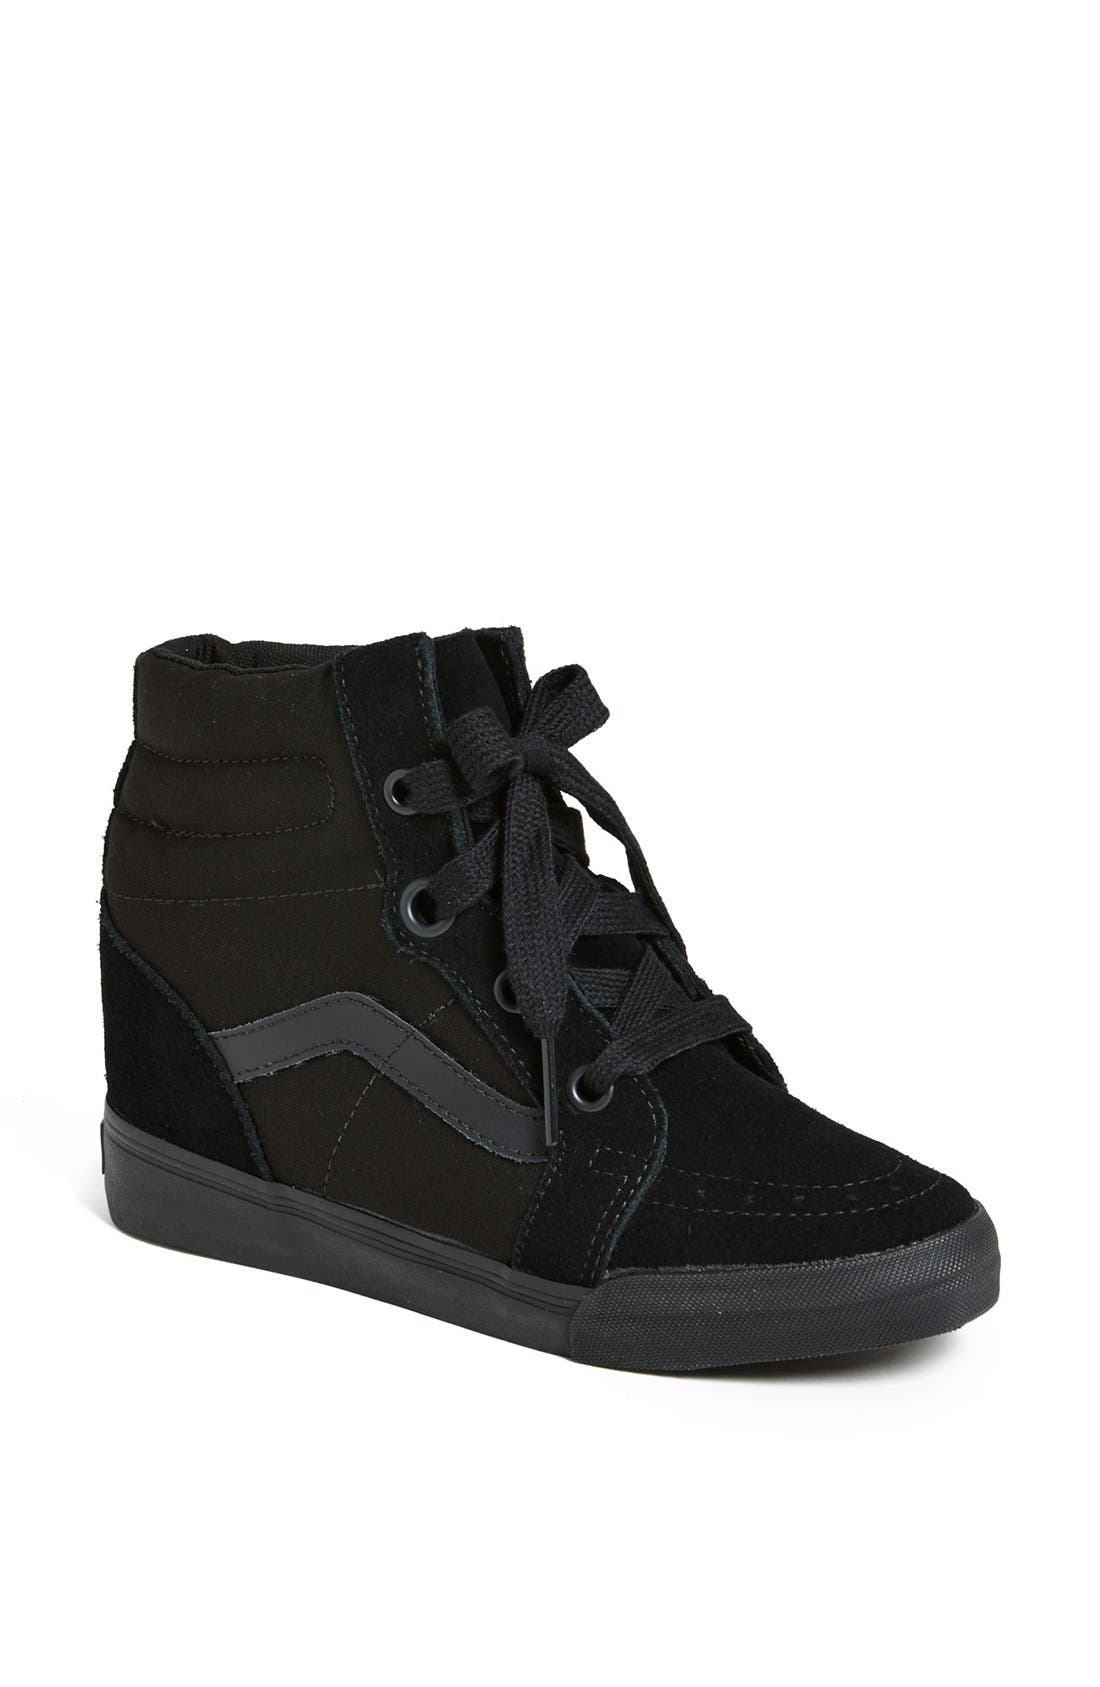 Main Image - Vans 'Sk8 Hi' Wedge Sneaker (Women)